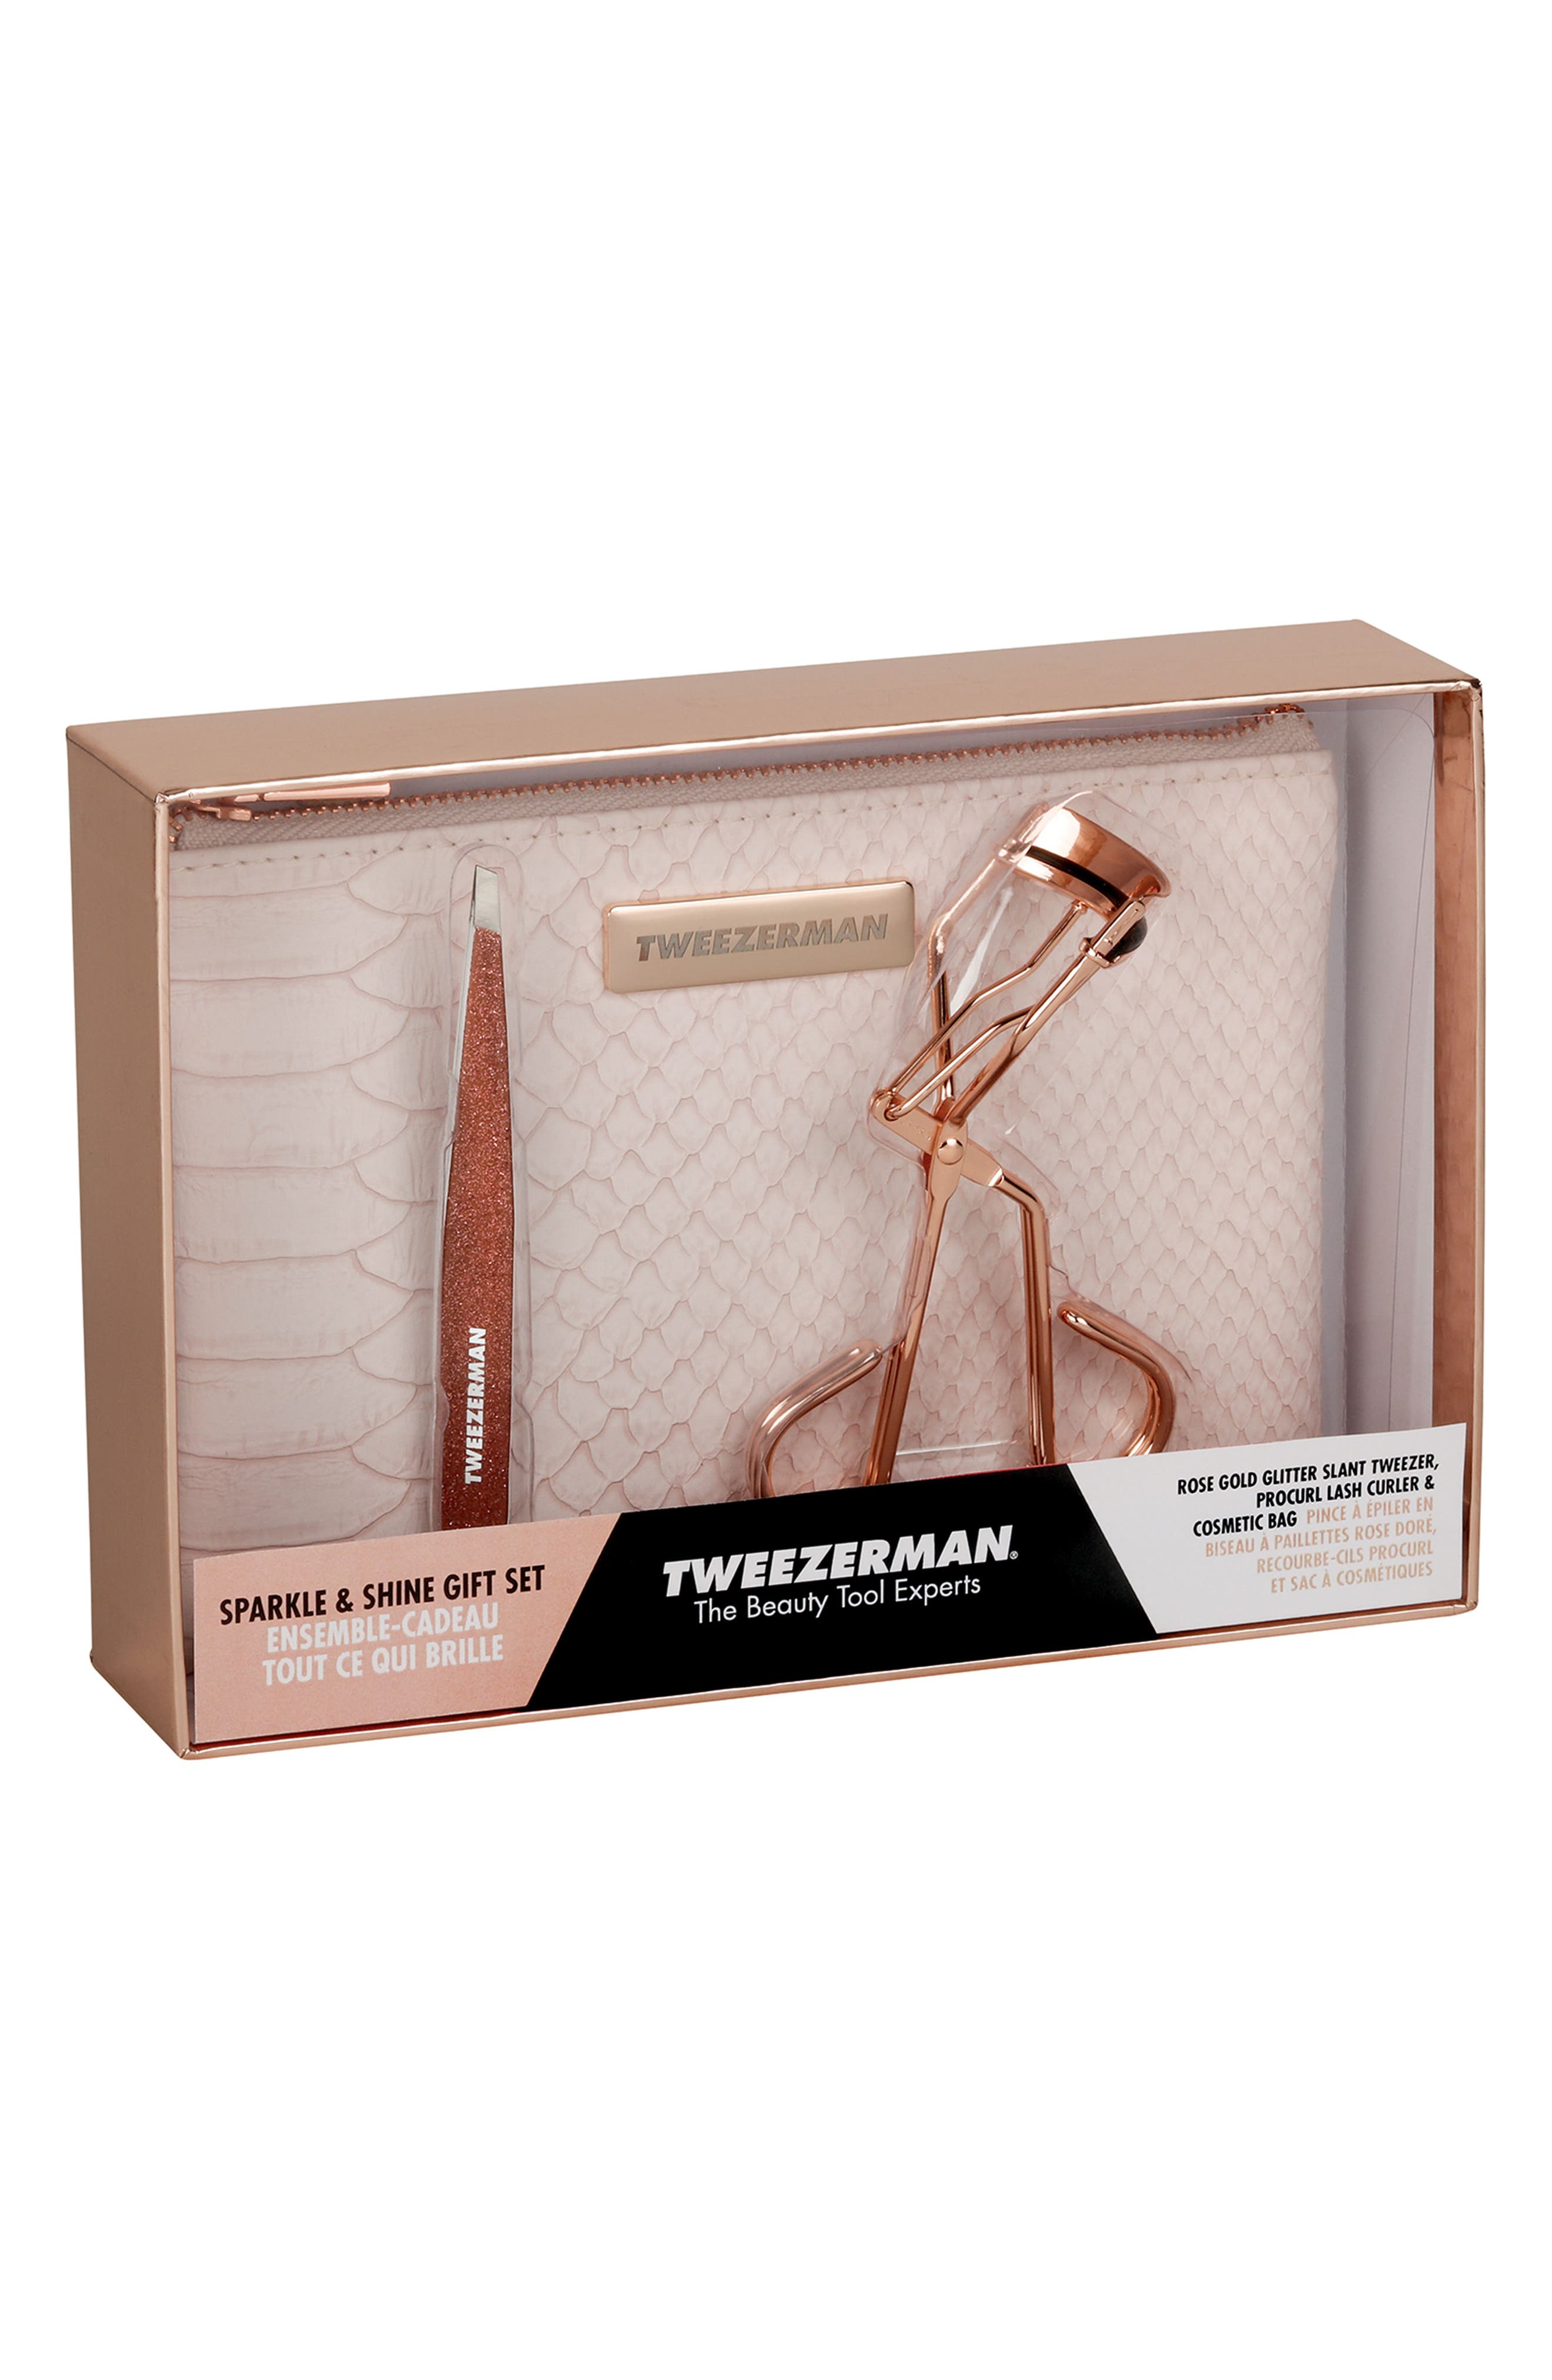 TWEEZERMAN Sparkle & Shine Set (Limited Edition)